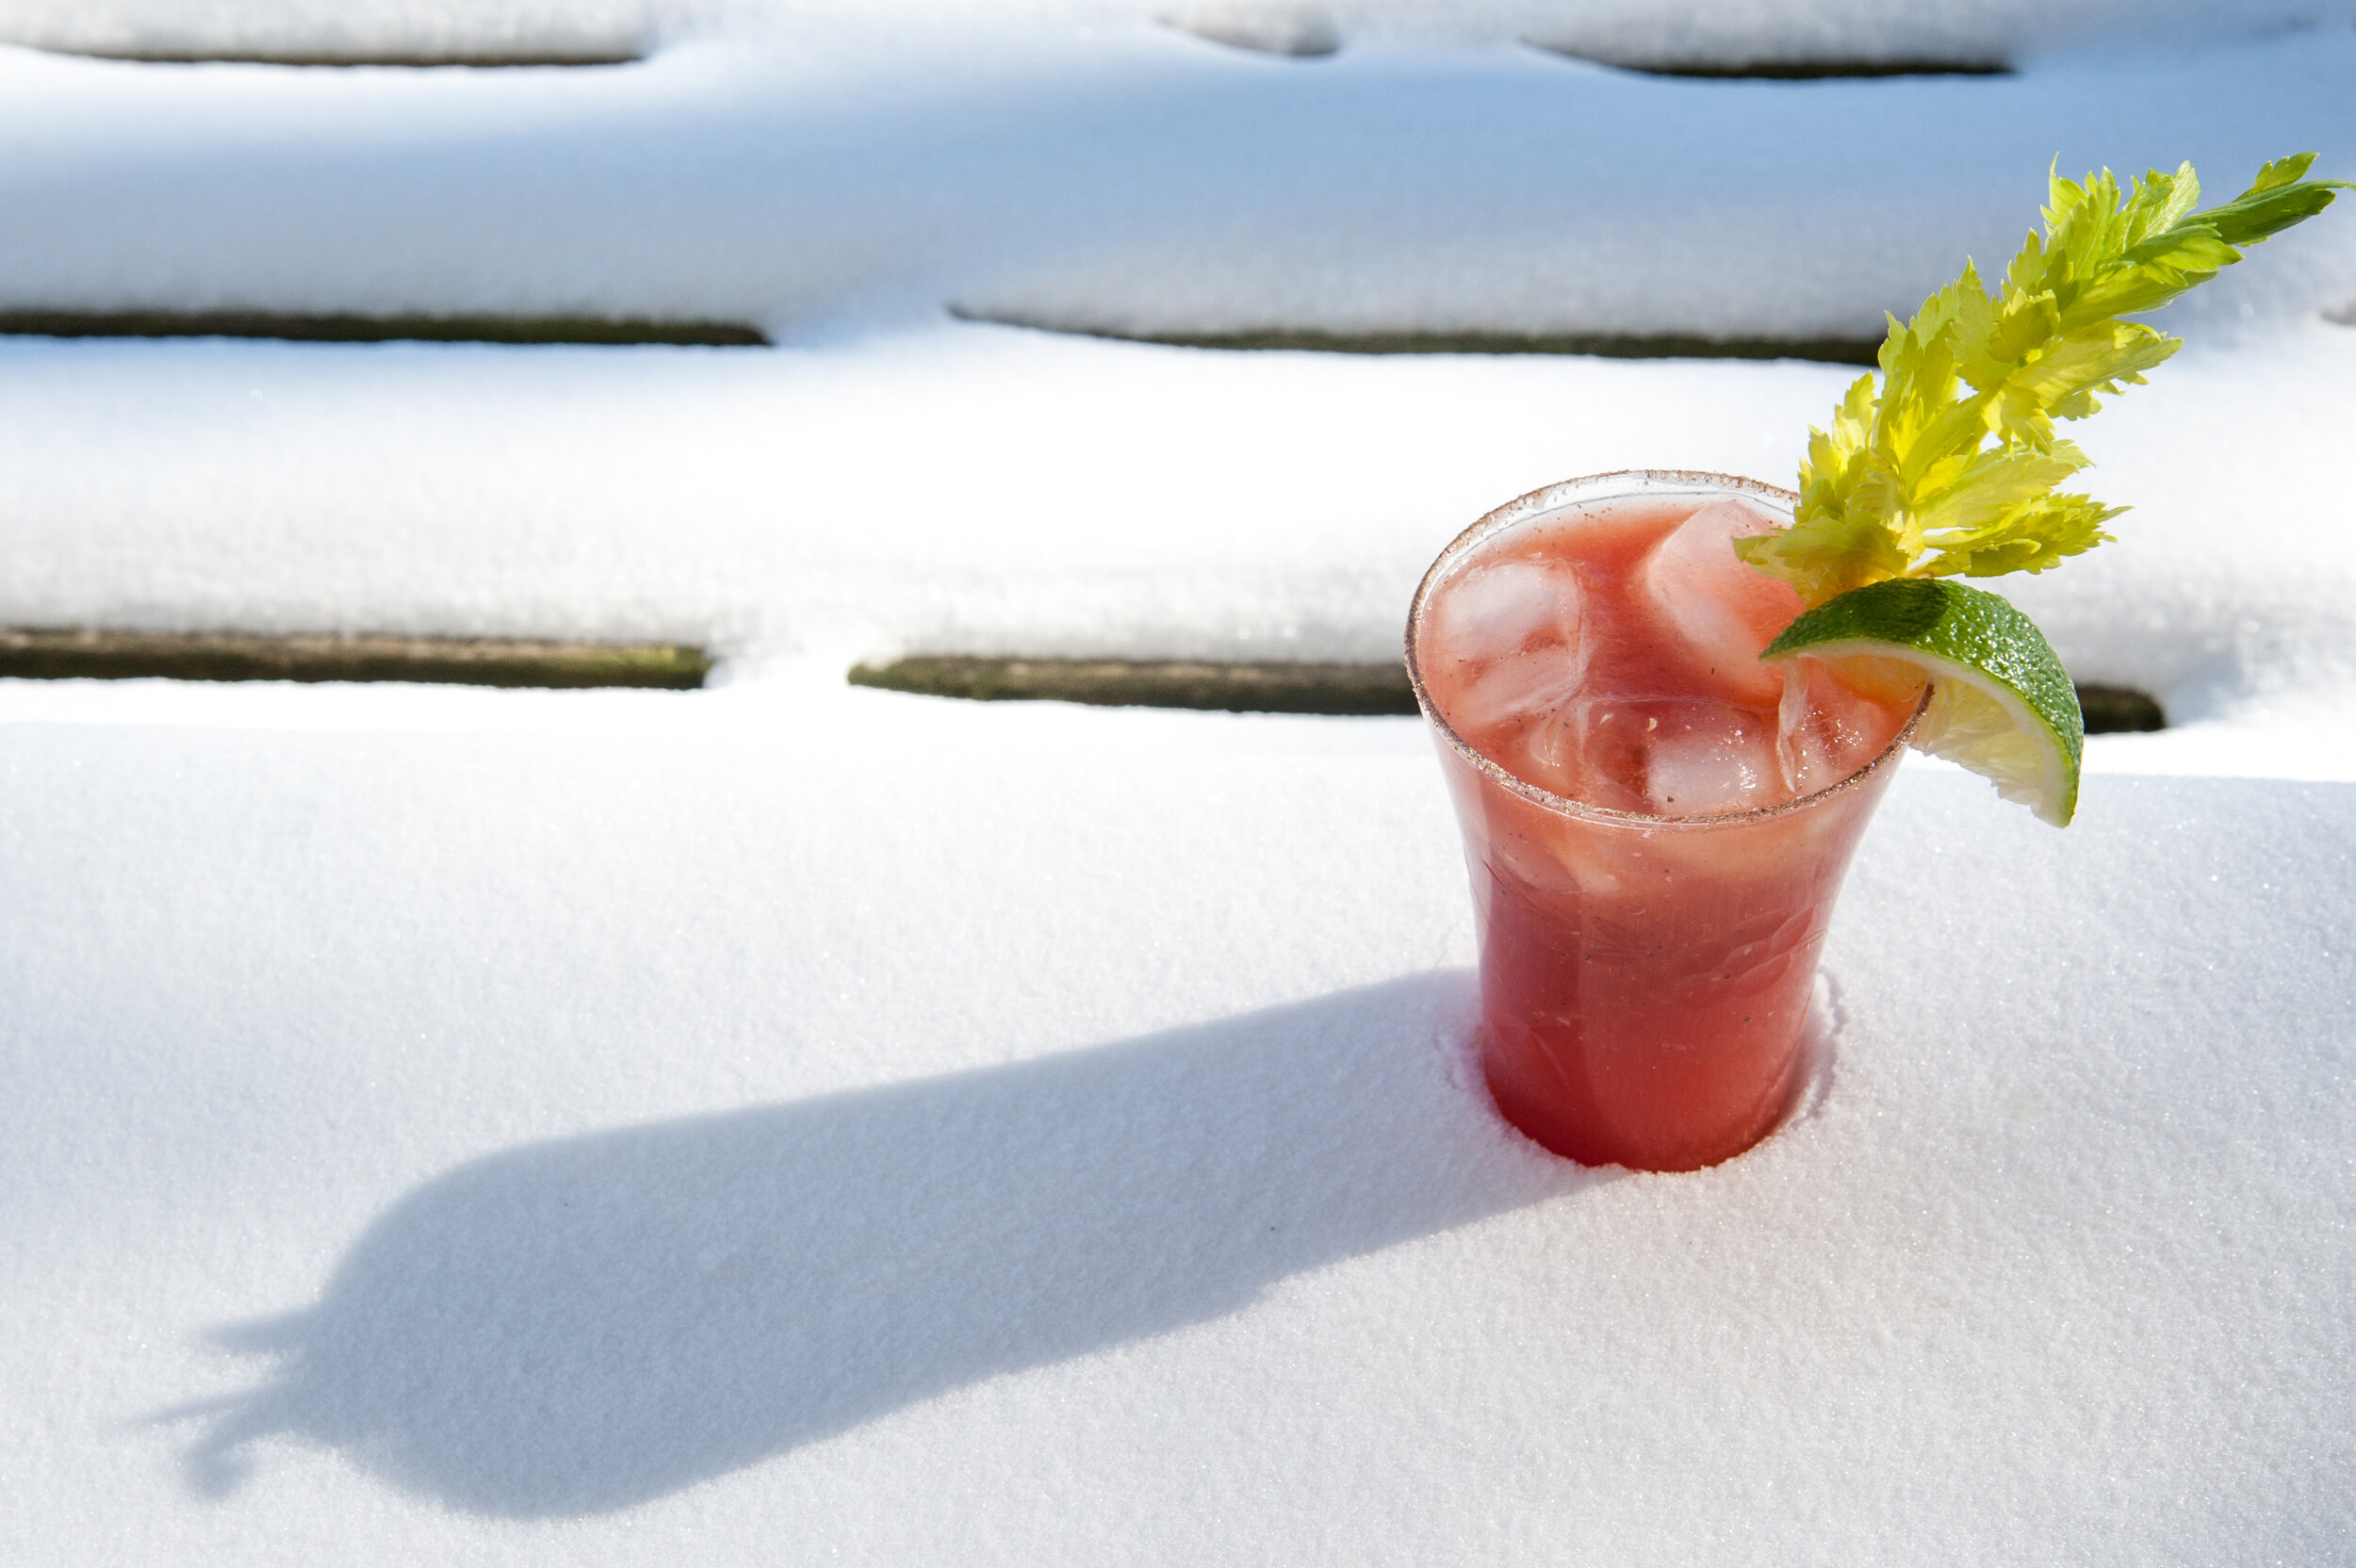 CAESAR - 2 oz Glacial Lakes Vodka 2 dashes Tabasco3 dashes Worcestershire sauce1/8 tsp of horseradish4-6 oz Clamato JuiceGround PepperGarnish with celery stalk and lime wedgeRim highball glass with celery salt. Pour ingredients over ice in glass. Finish with ground pepper on top.